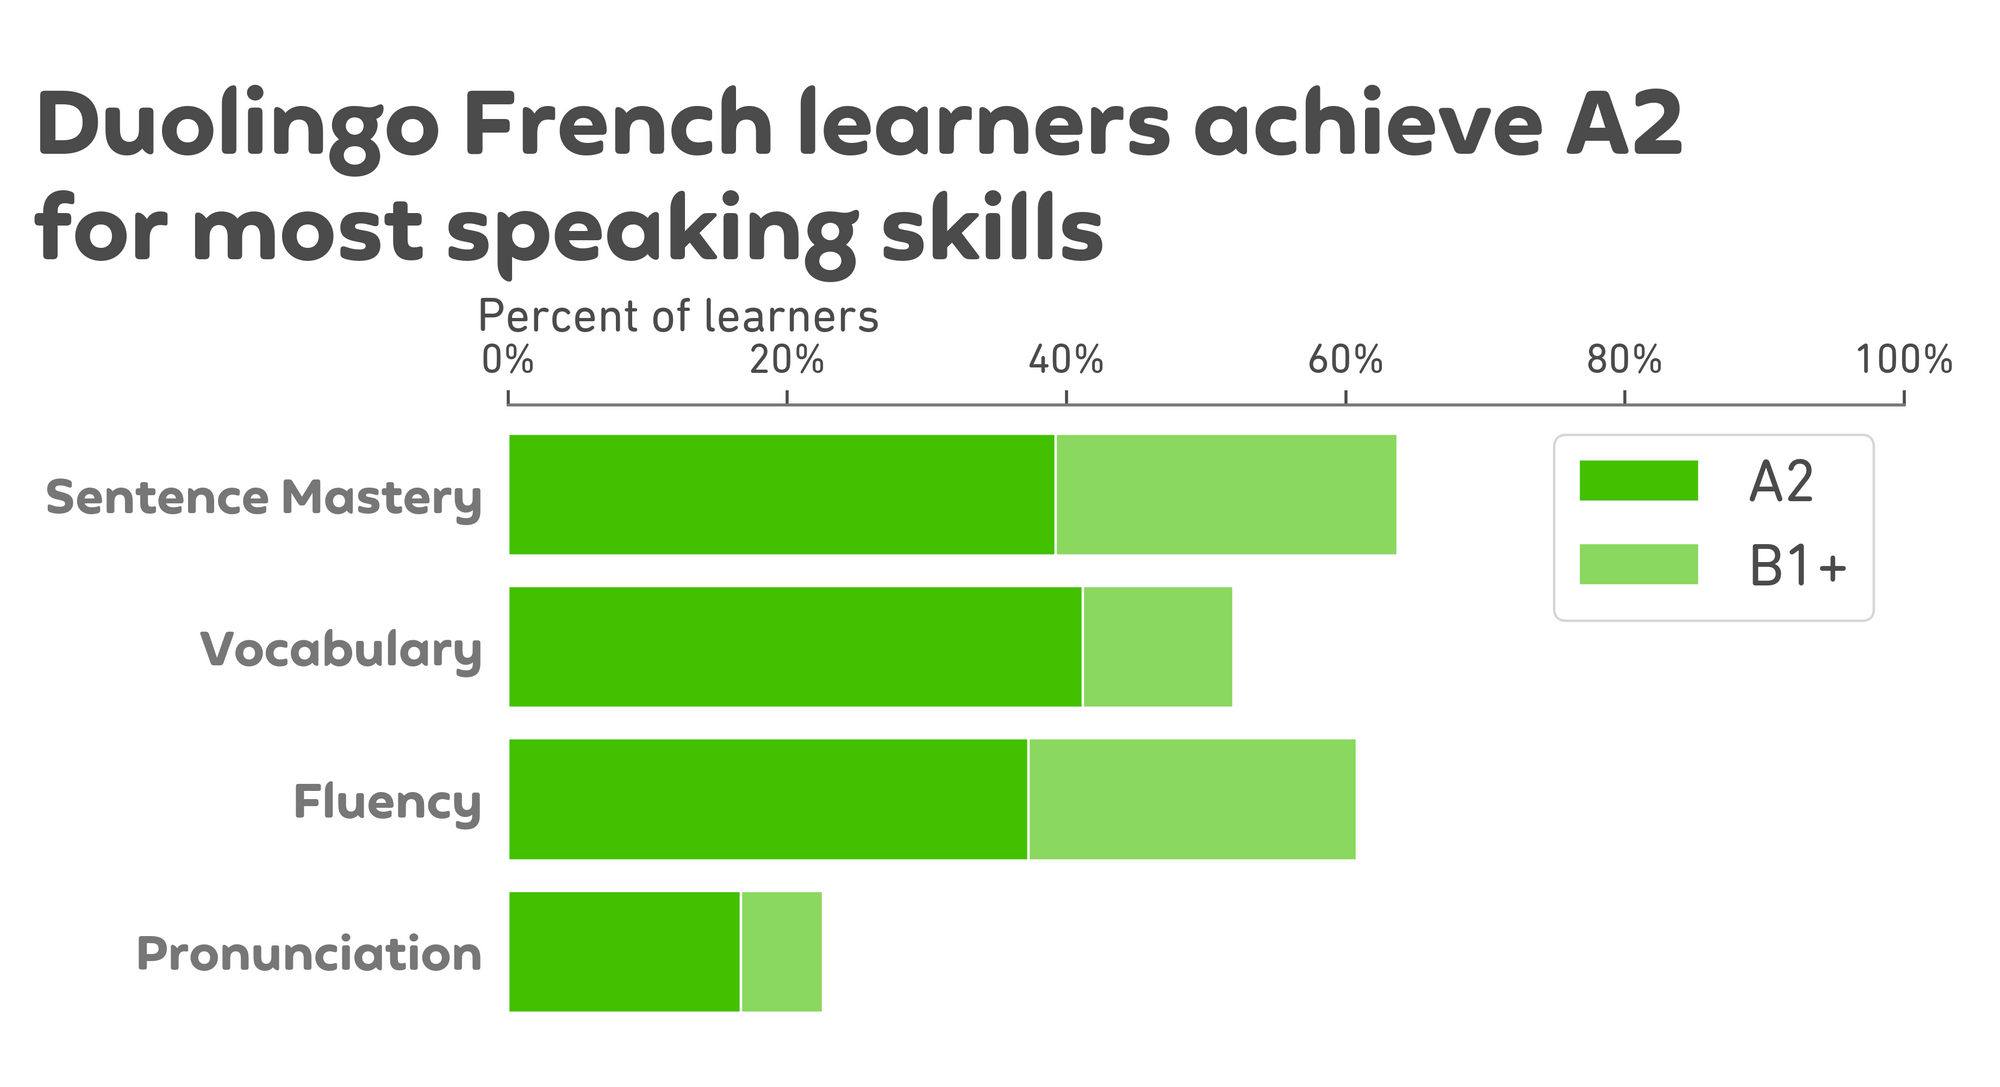 """Graph of results. The title is """"Duolingo French learners achieve A2 for most speaking skills,"""" and below is a chart like the Spanish chart above. There are 4 horizontal bars, one for each speaking subscore, and the x-axis is percent of learners from 0 to 100. Each bar is divided into a dark green section on the left and a light green section on the right. For sentence mastery, the dark green bar extends to about 40% for A2 achievement and the light green continues to about 62% for B1 or higher. For vocabulary, the dark green bar extends to about 40% for A2 and the light green continues to about 52% for B1 or higher. For fluency, the dark green bar extends to about 38% for A2 and the light green continues to about 60% for B1 or higher. Finally, for pronunciation, the dark green extends to about 18% for A2 and the light green continues to about 22% for B1 or higher."""